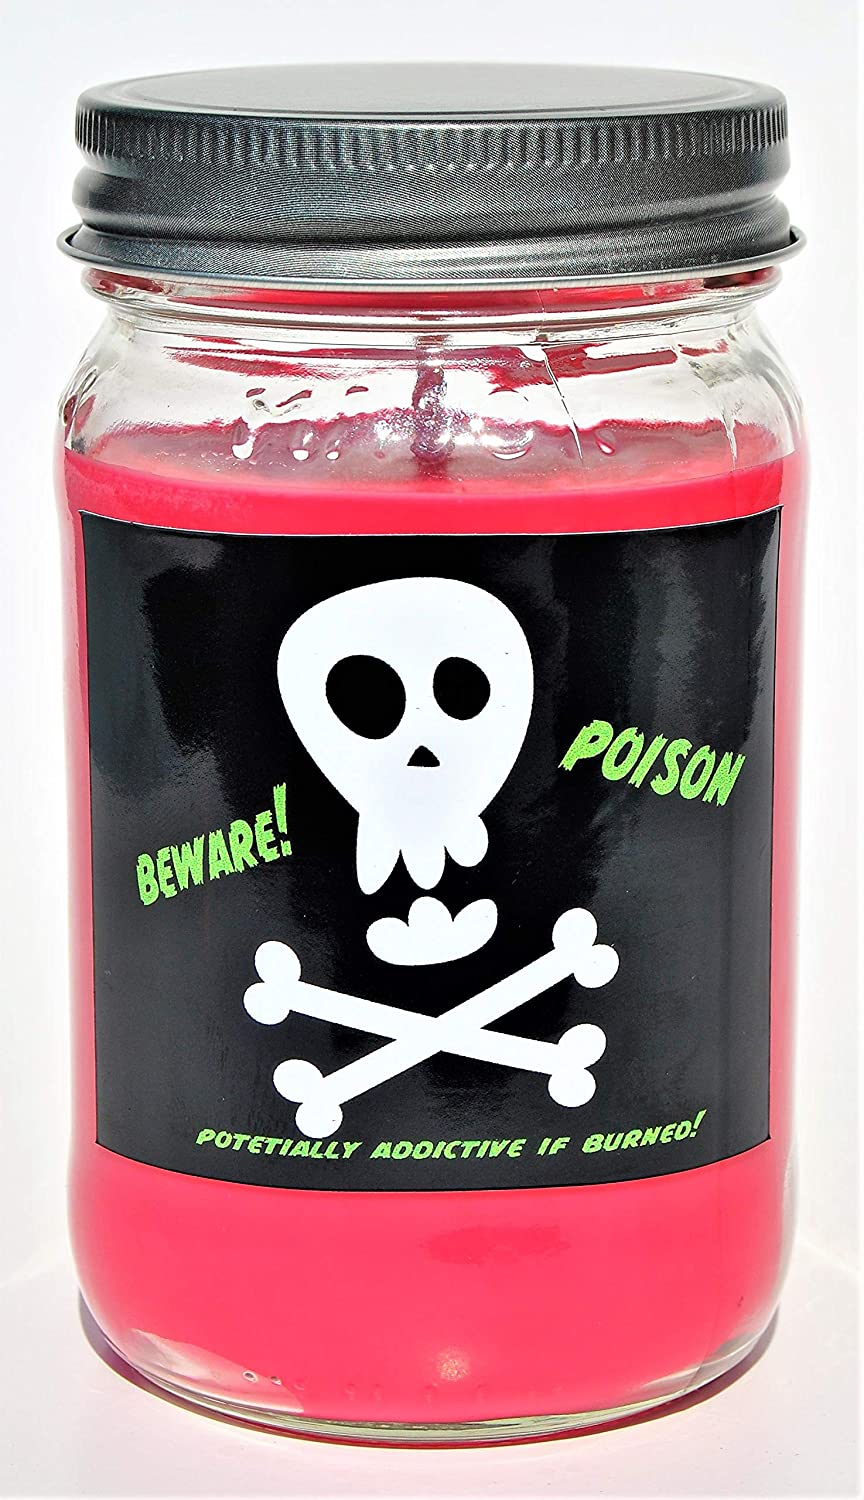 Soy Candles Burn Cleaner ~ Longer ~ Non-Toxic ~ The Original 100/% Yinzer Made in USA Sugar Creek Candles-Poison Cherry DR. Pepper Gift Any Occasion 100/% Soy Wax Candle